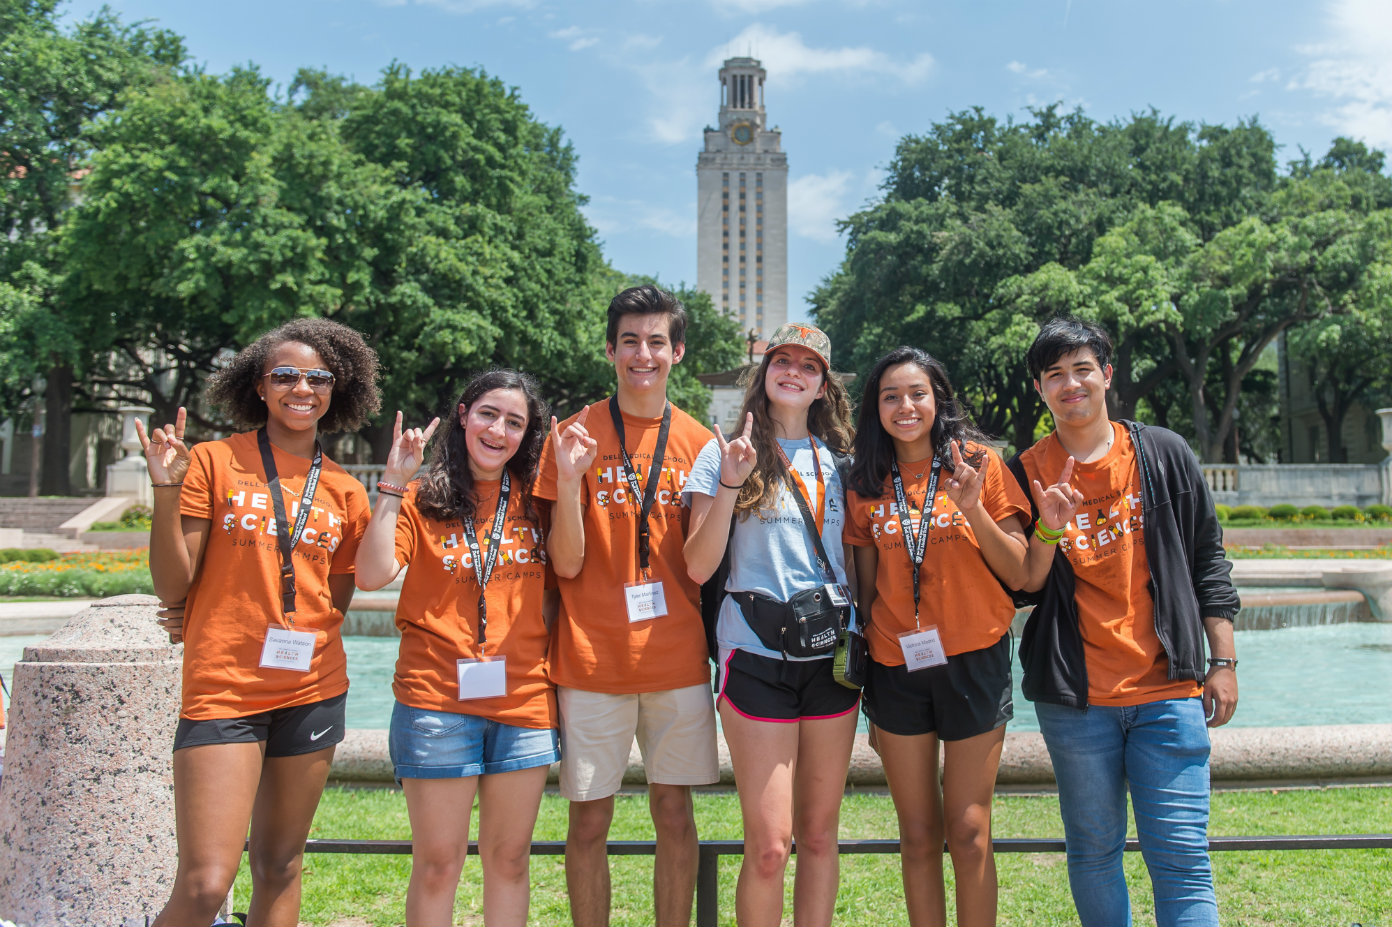 Summer camp participants pose for a photo in front of the UT Tower